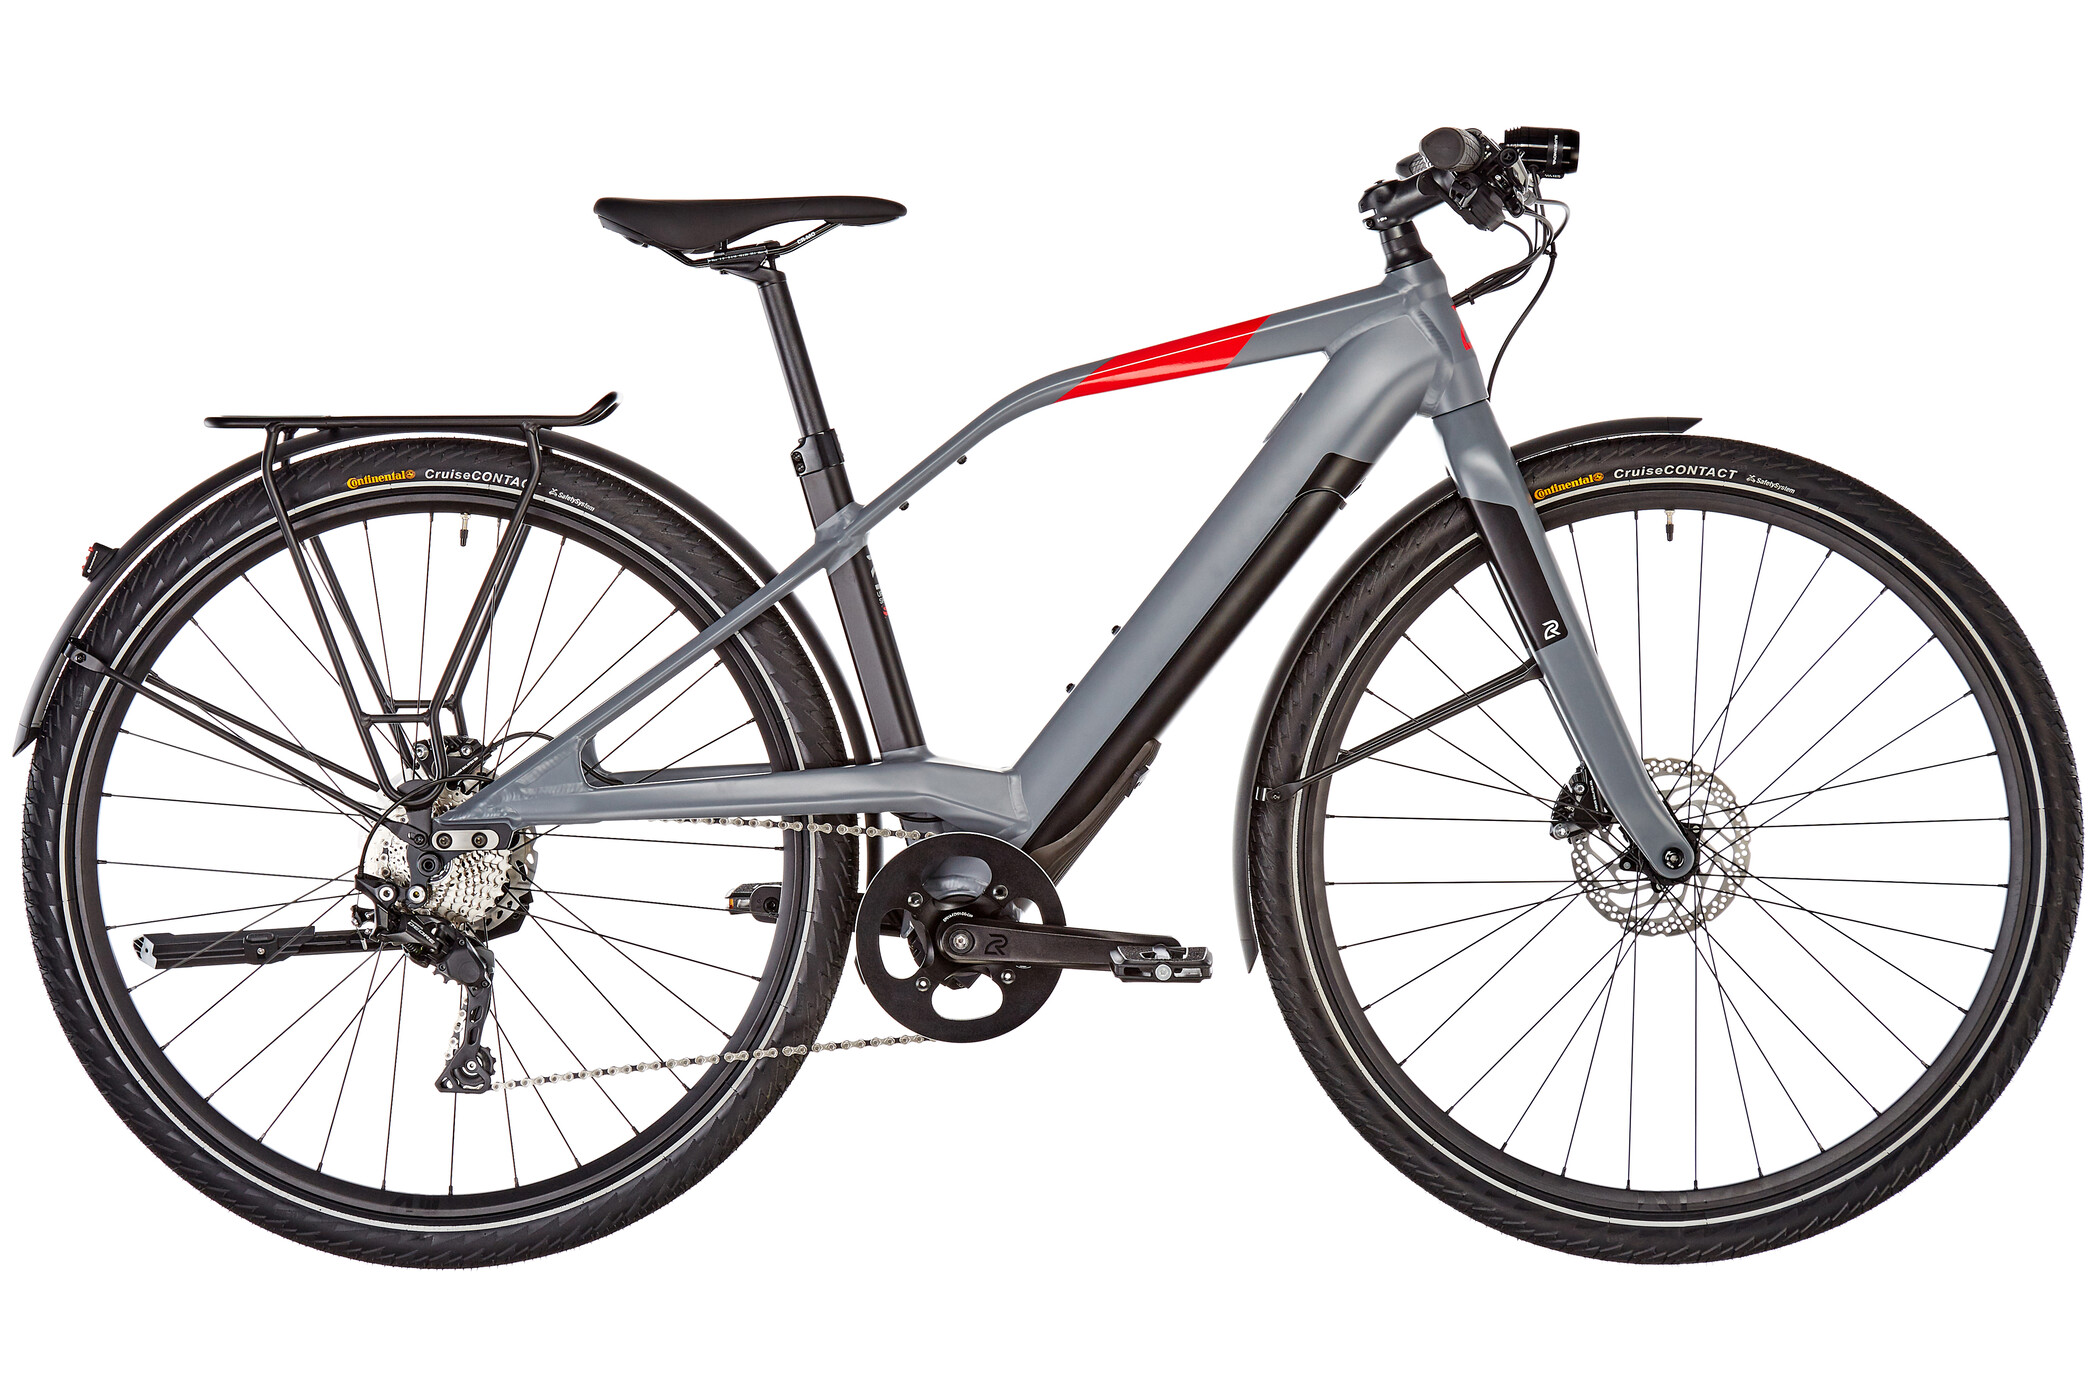 LOGO FS10 FAZUA E-citybike, dark grey/black/red (2019) | City